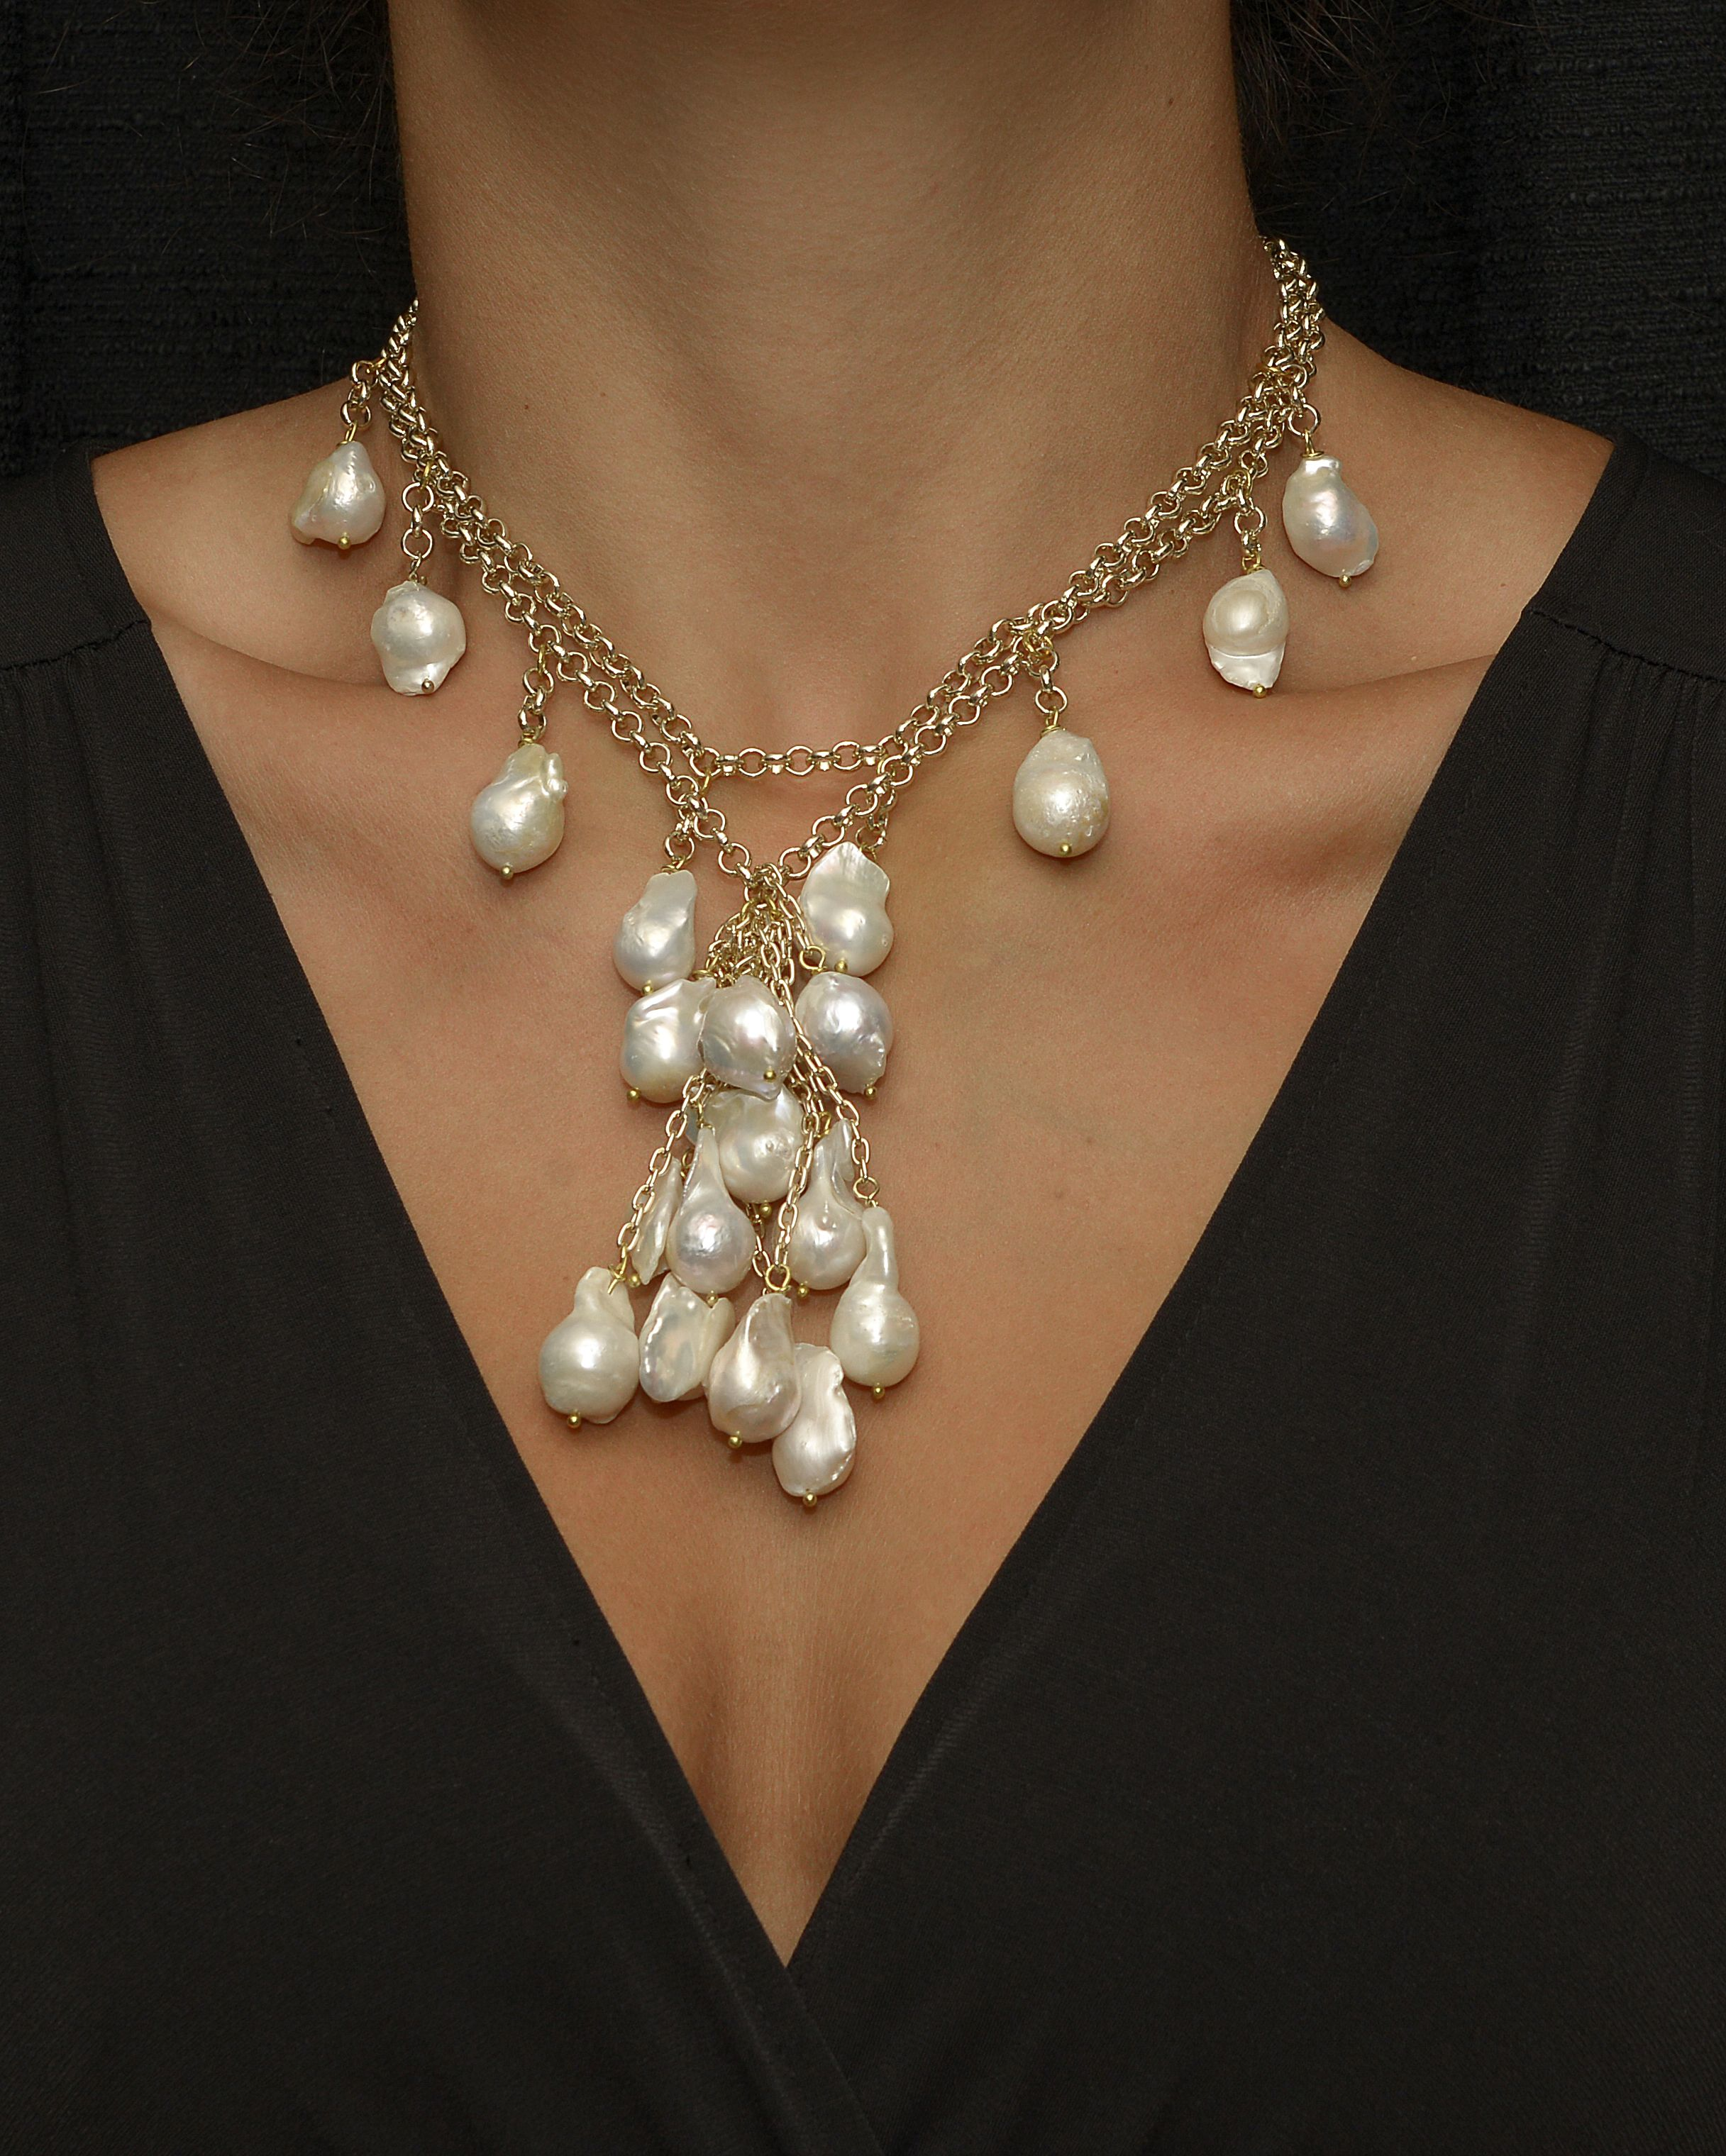 New Fashion Black White Faux Pearl Necklace Rope Necklace Jewelry Bib Statement